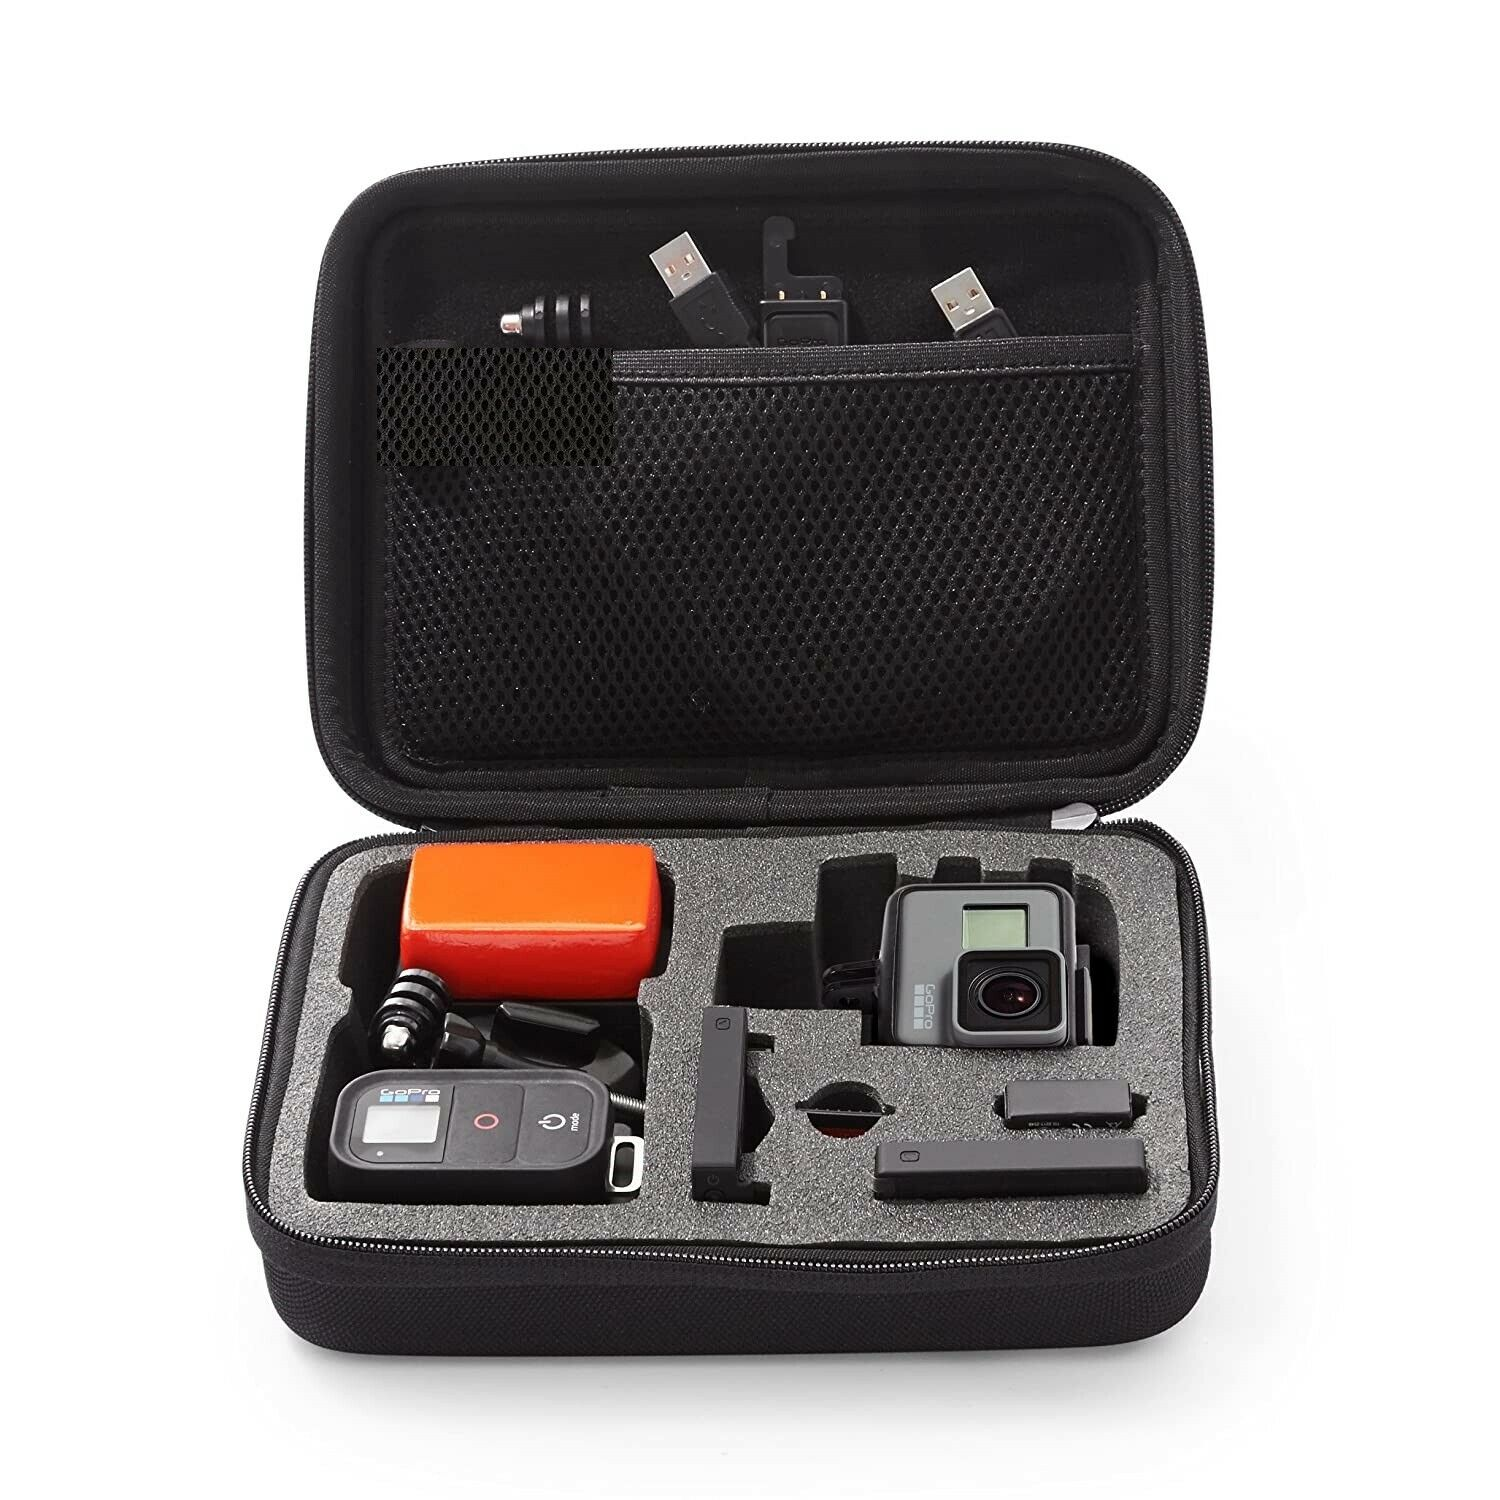 Carrying Case / Bag for GoPro (Small) Black Free Shipping UK